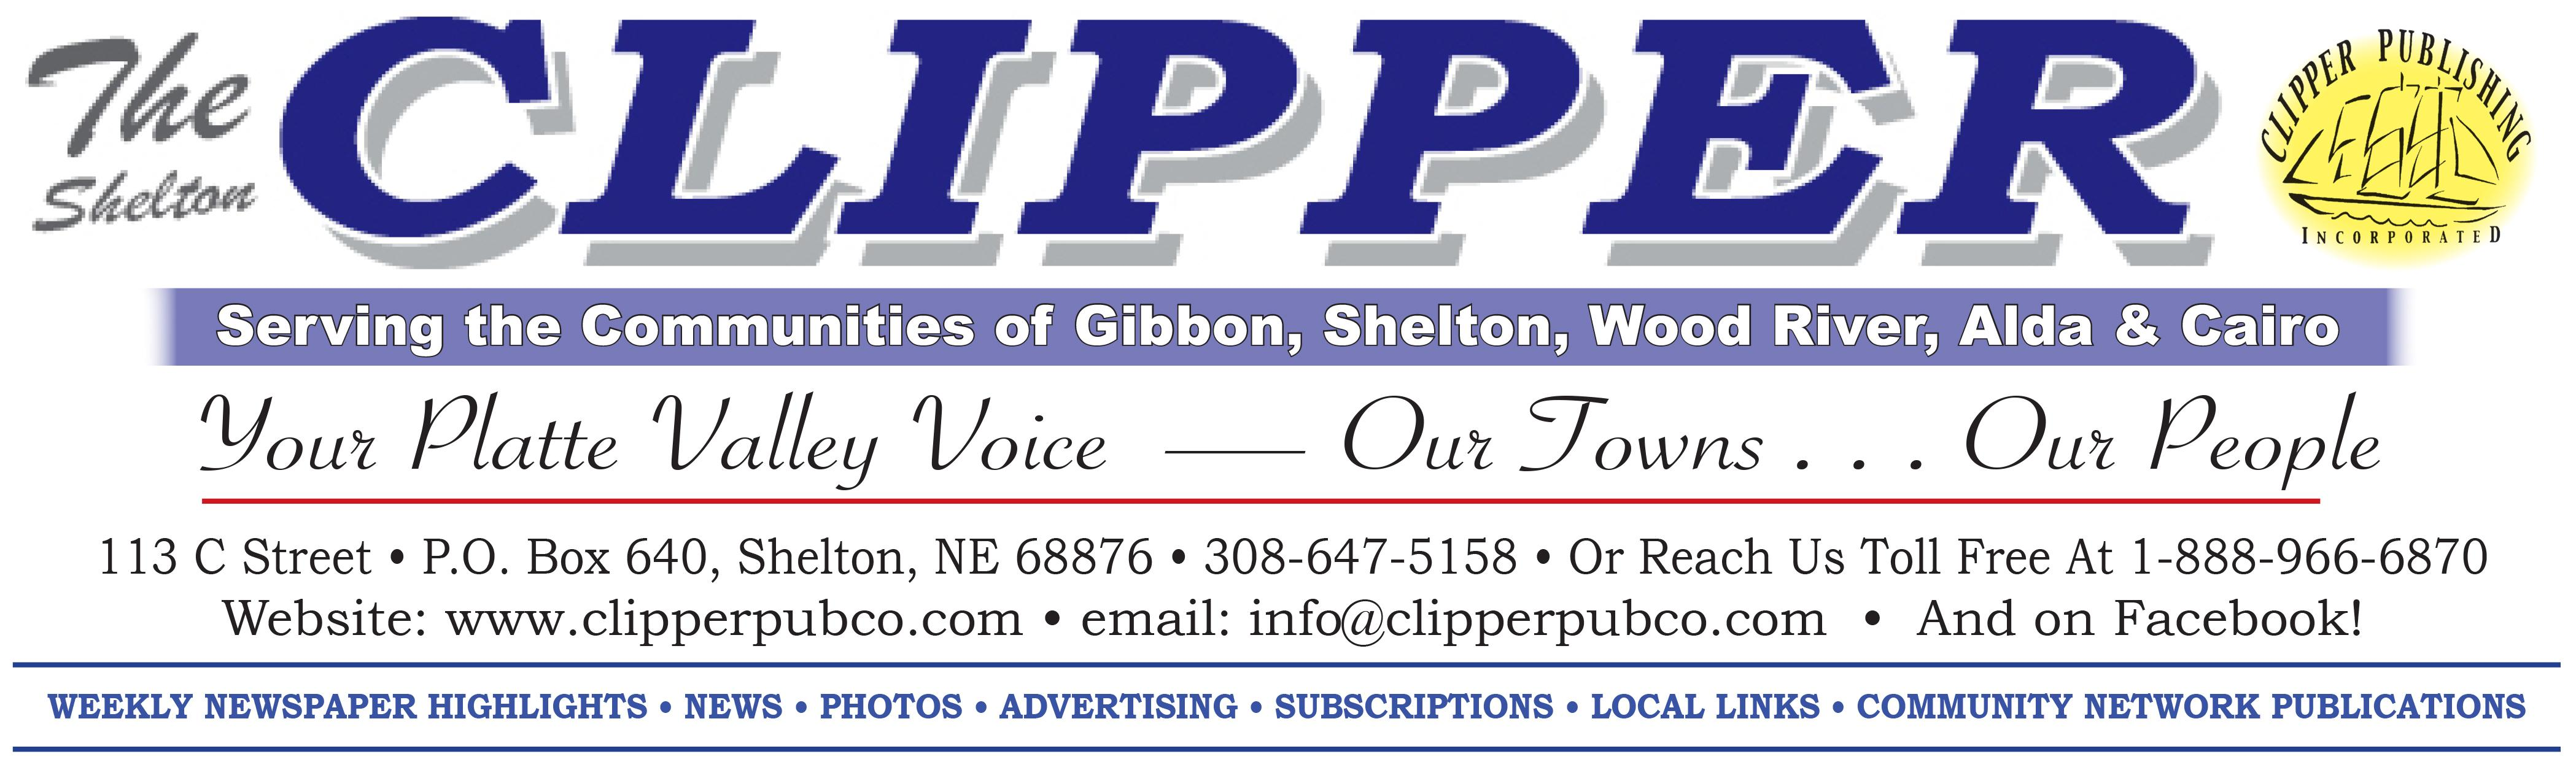 The Shelton Clipper